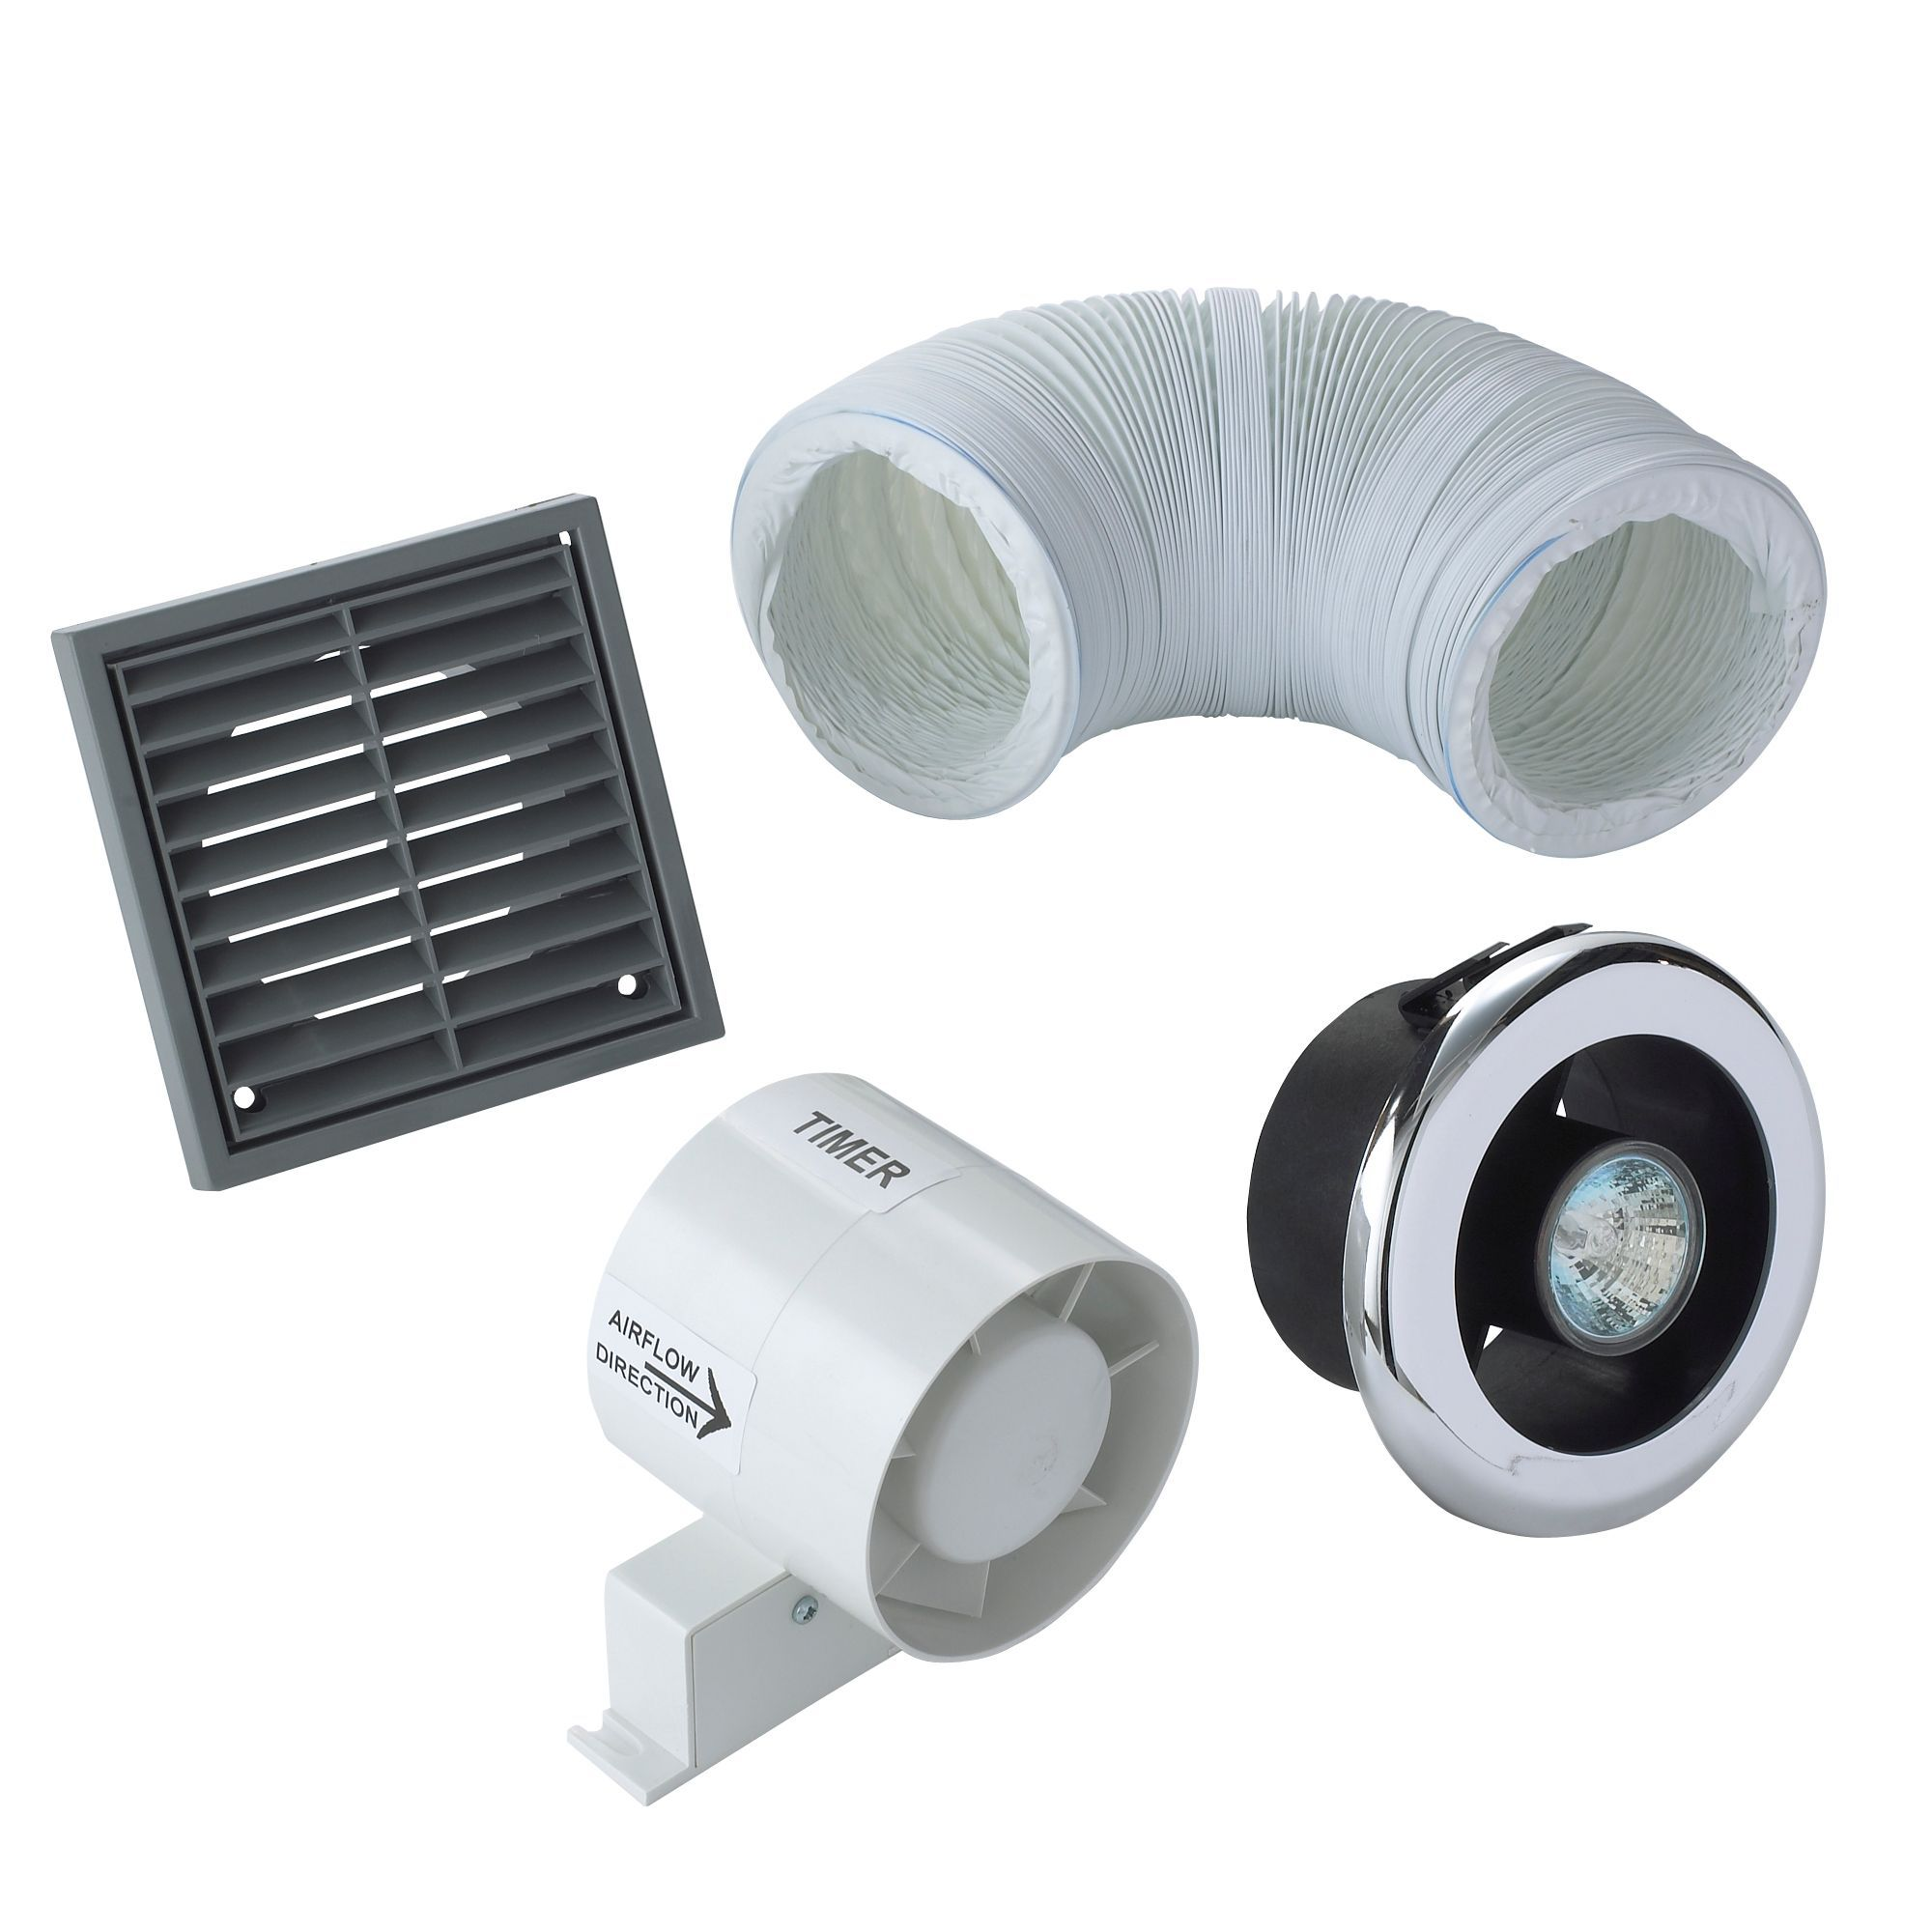 Manrose Vdisl100t Shower Light Bathroom Extractor Fan Kit With Timer 98 Mm Departments Diy At B Bathroom Extractor Fan Bathroom Extractor Pvc Shower